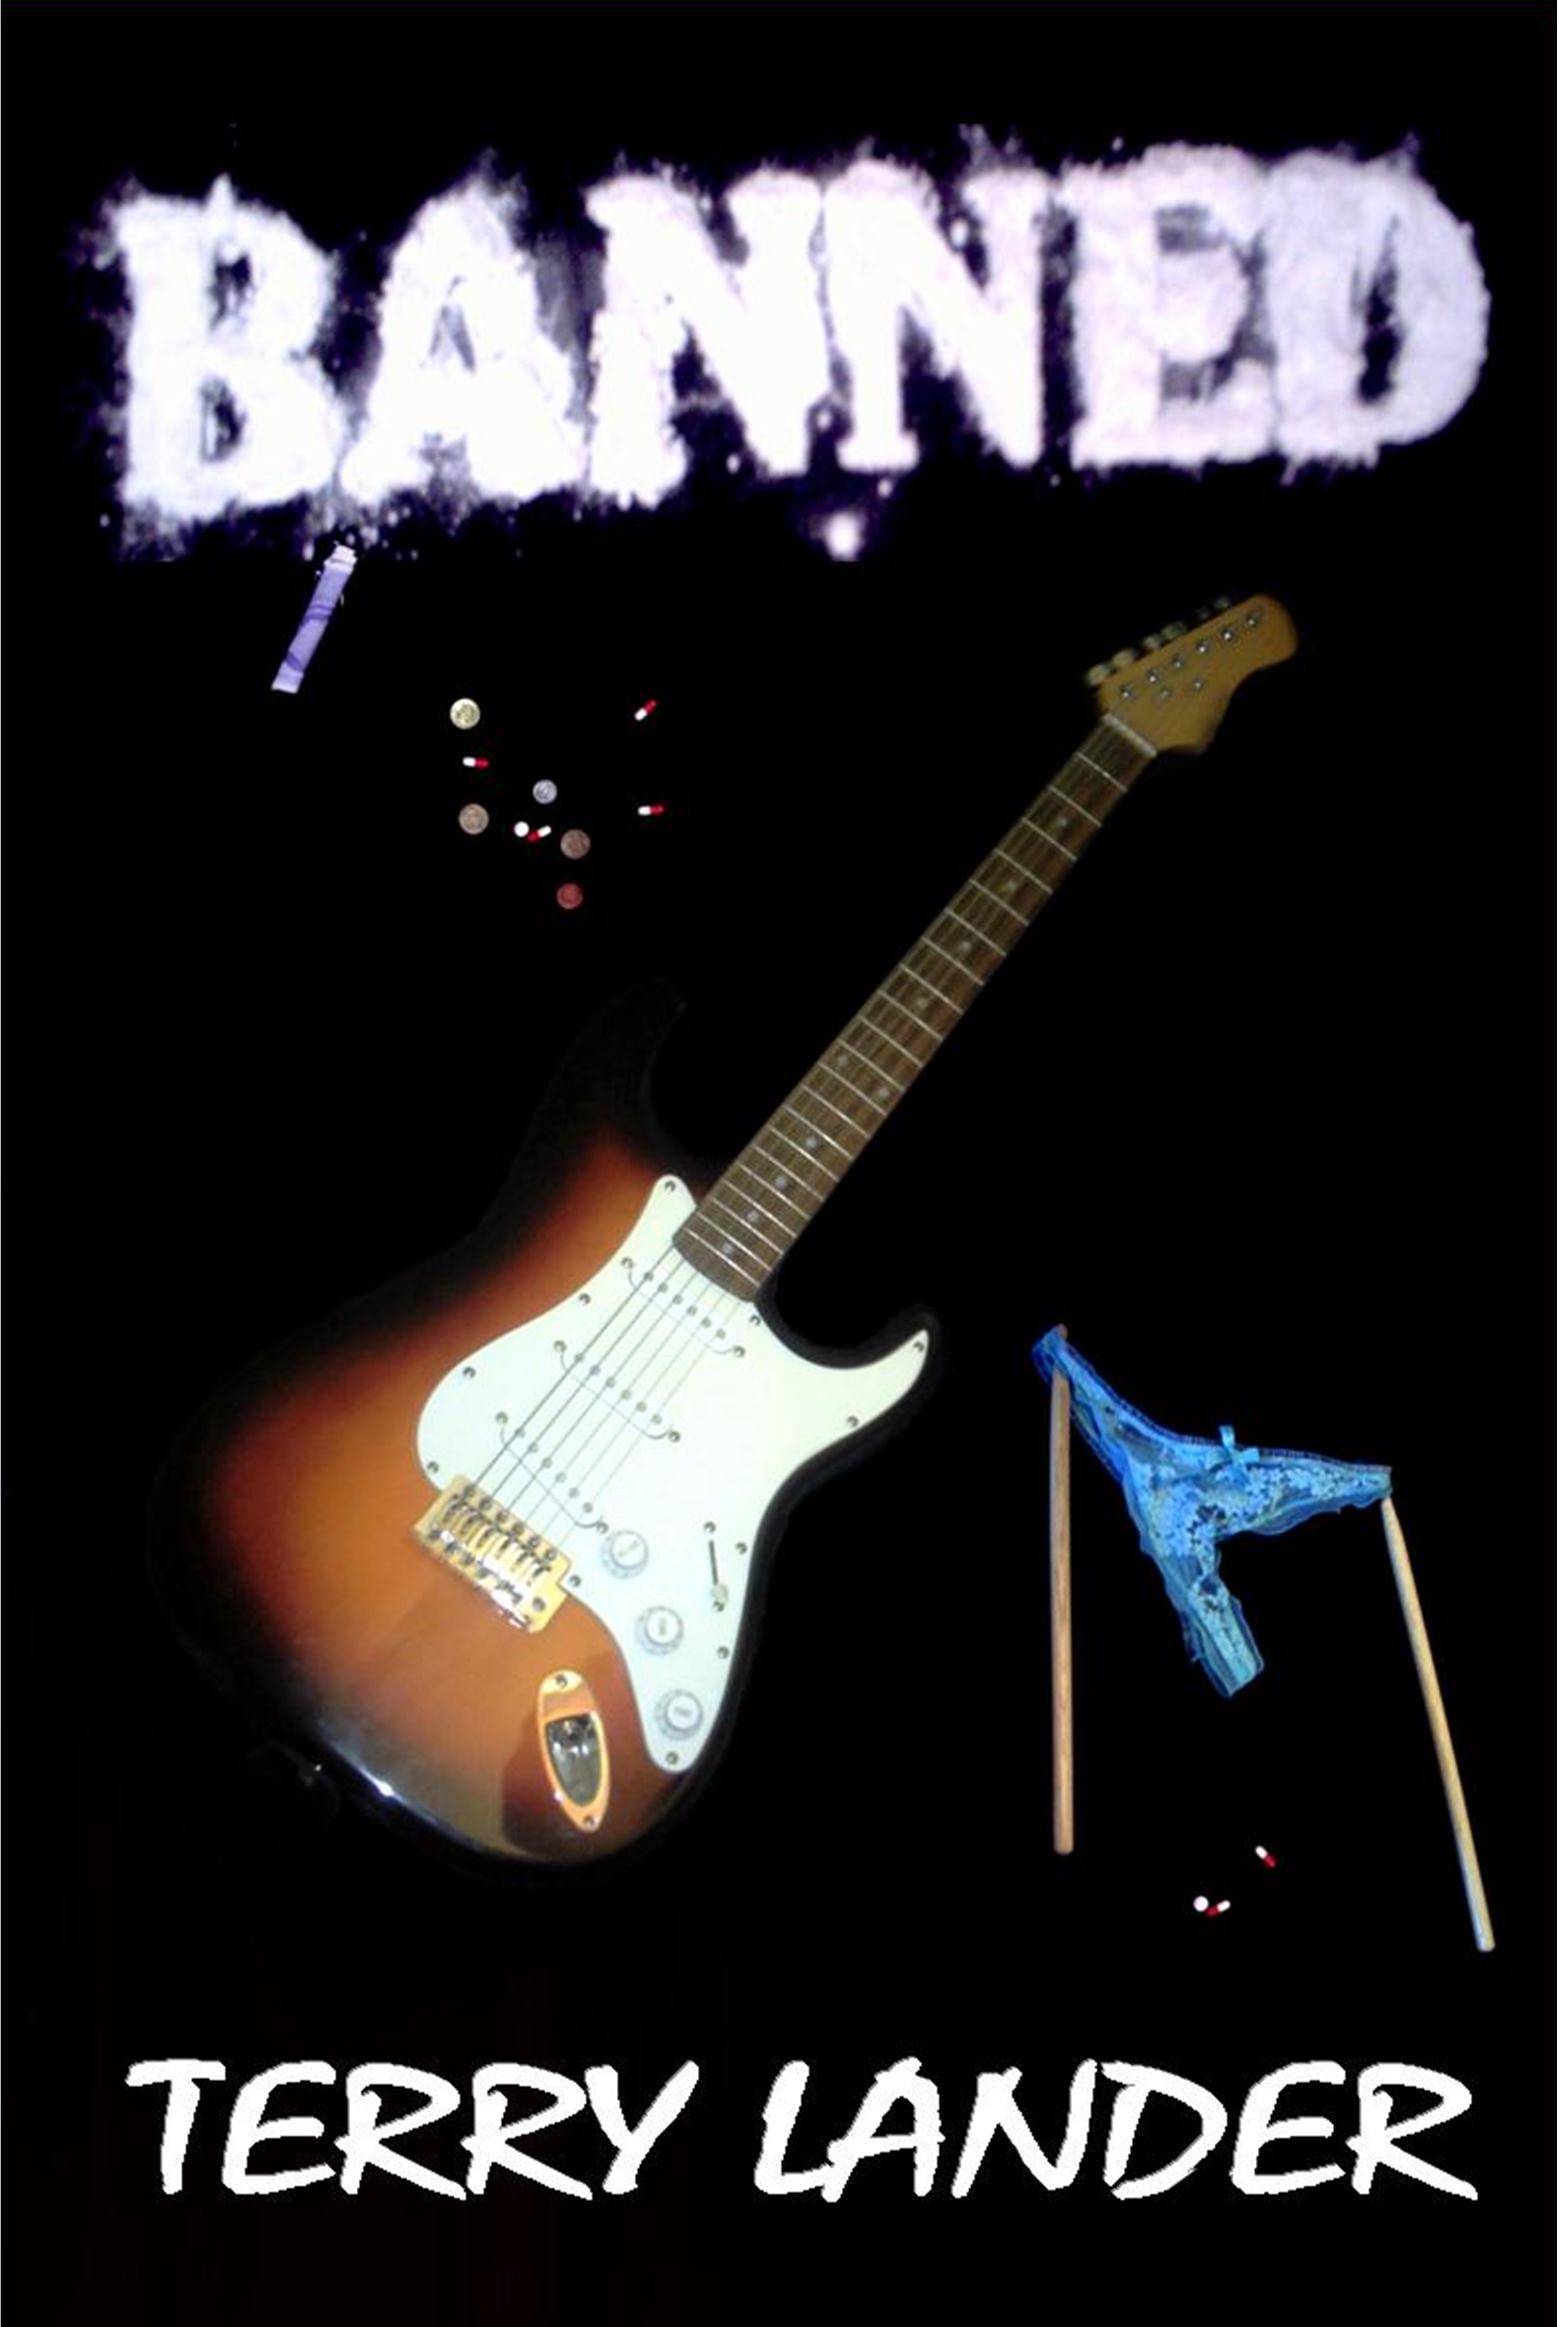 My first novel, Banned.